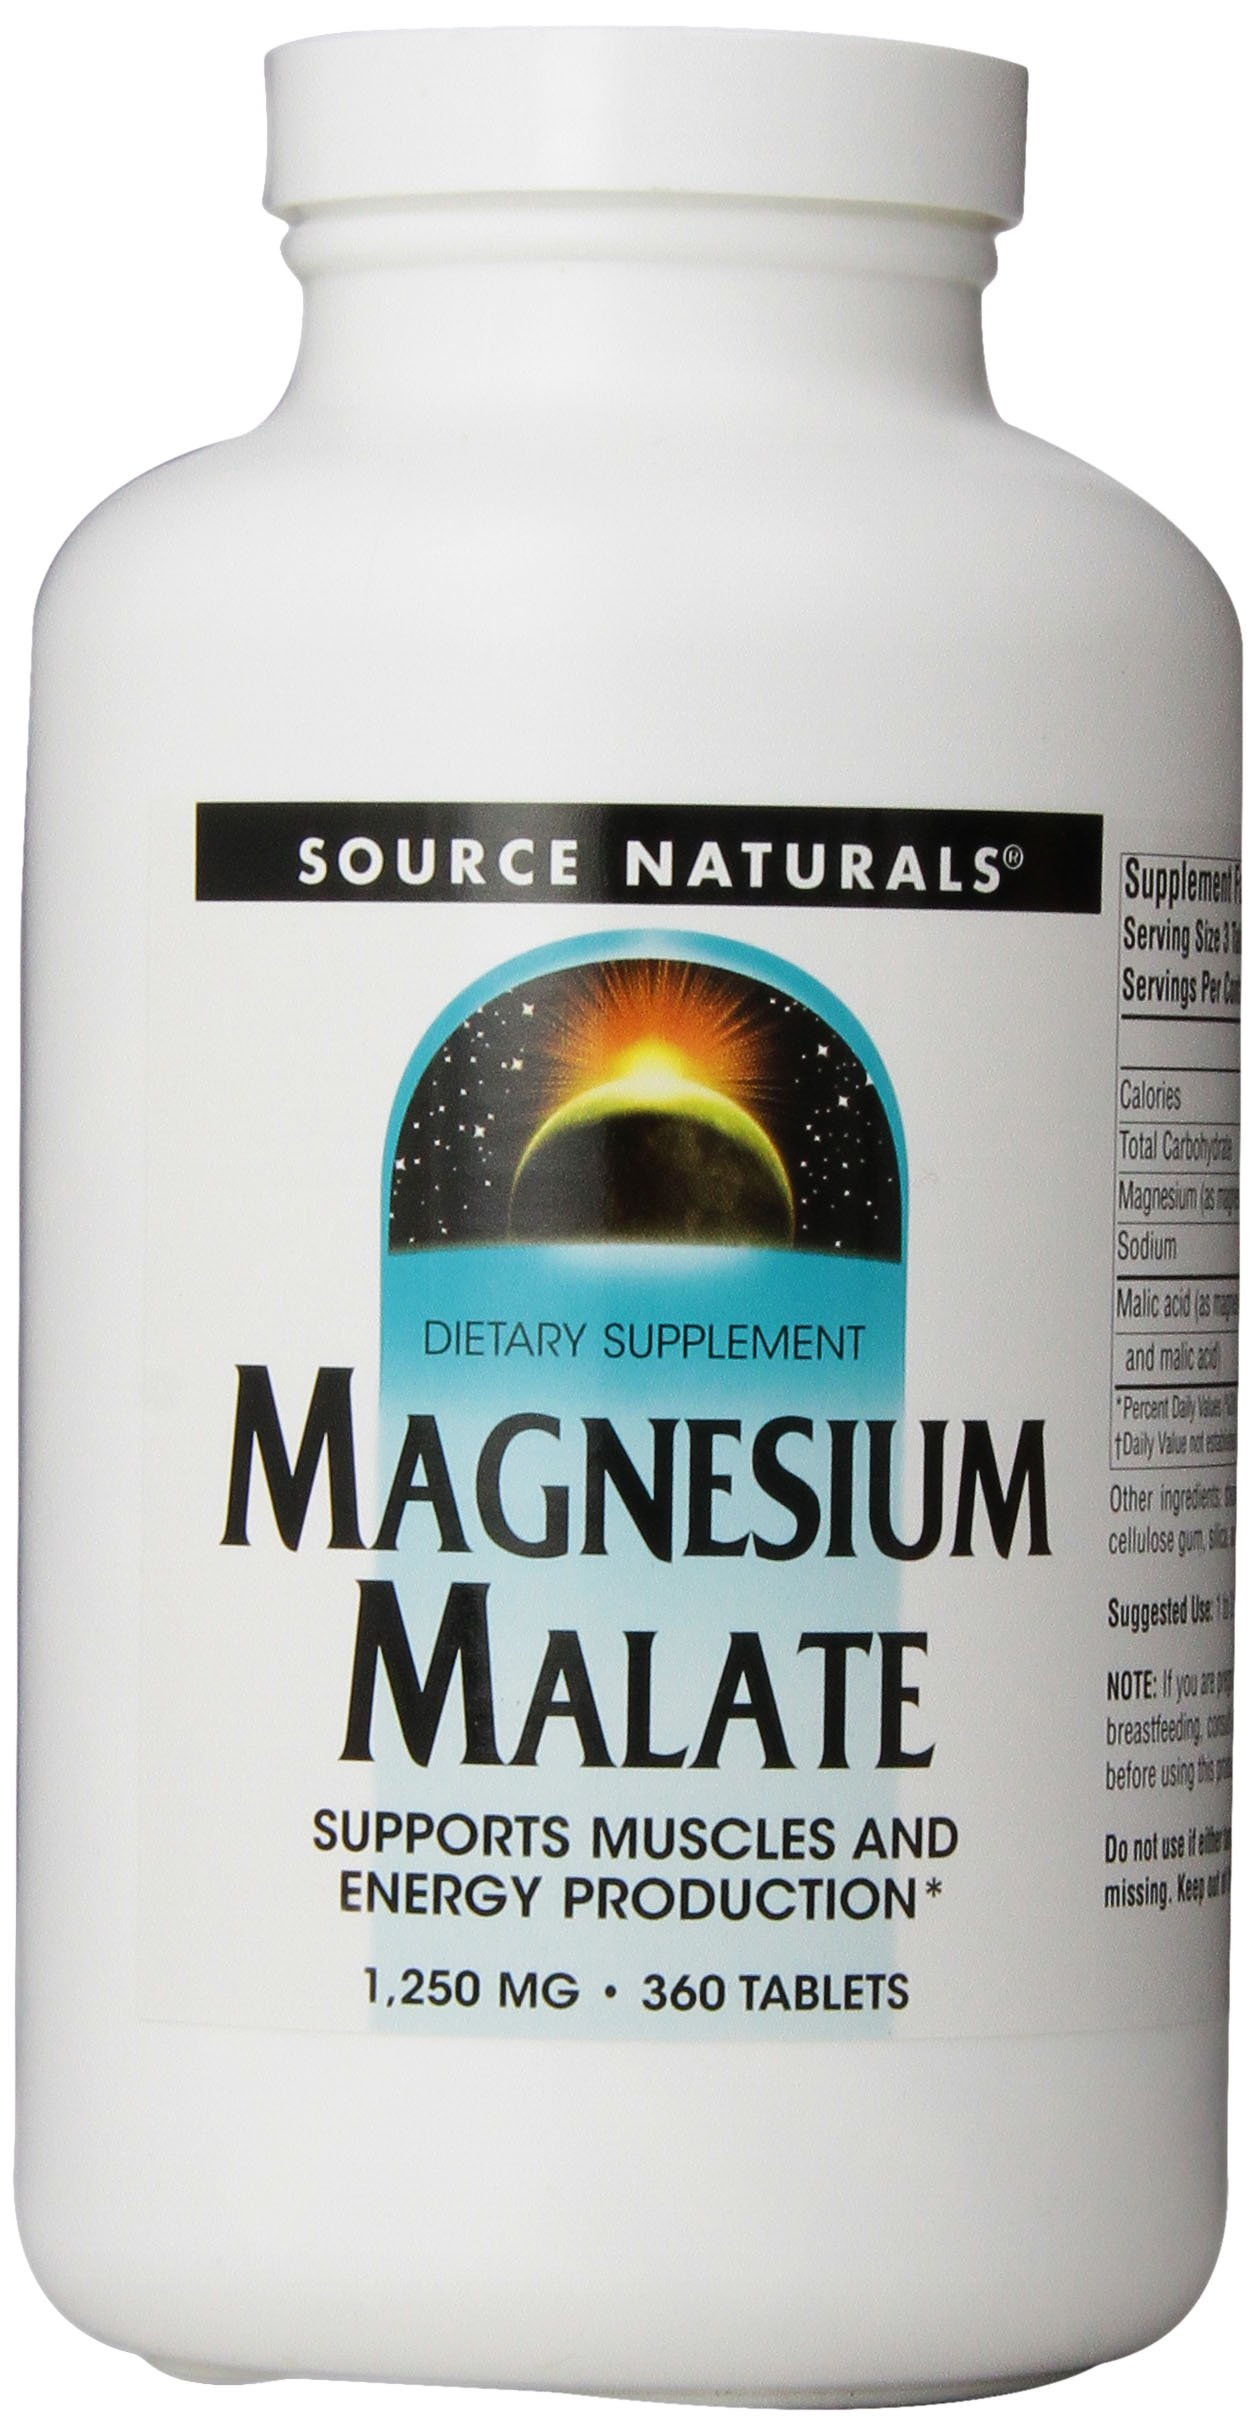 Source Naturals Magnesium Malate 1250mg, Supports Muscles and Energy Production,360 Tablets